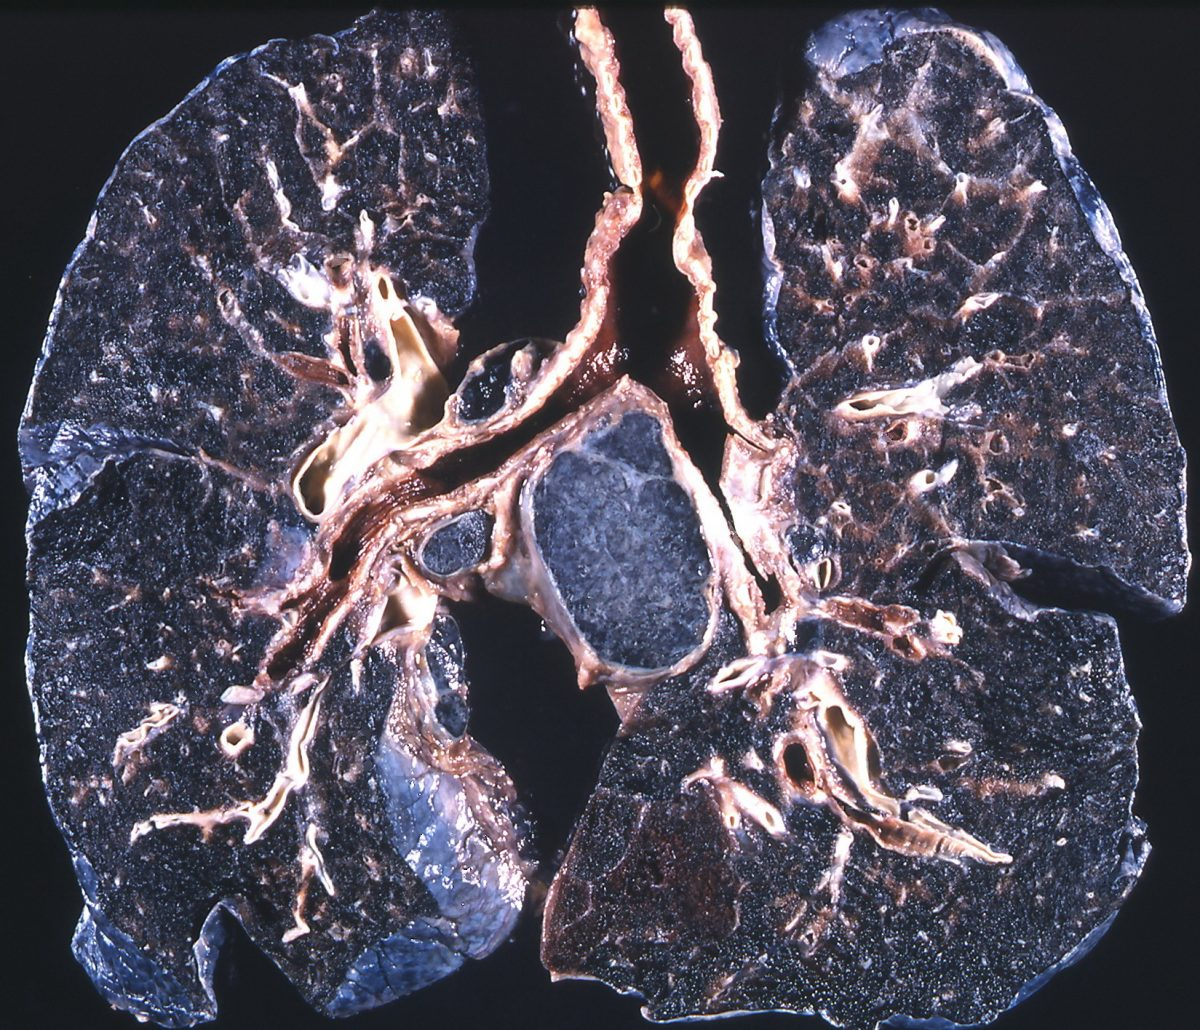 X-ray tender critical in fighting black lung